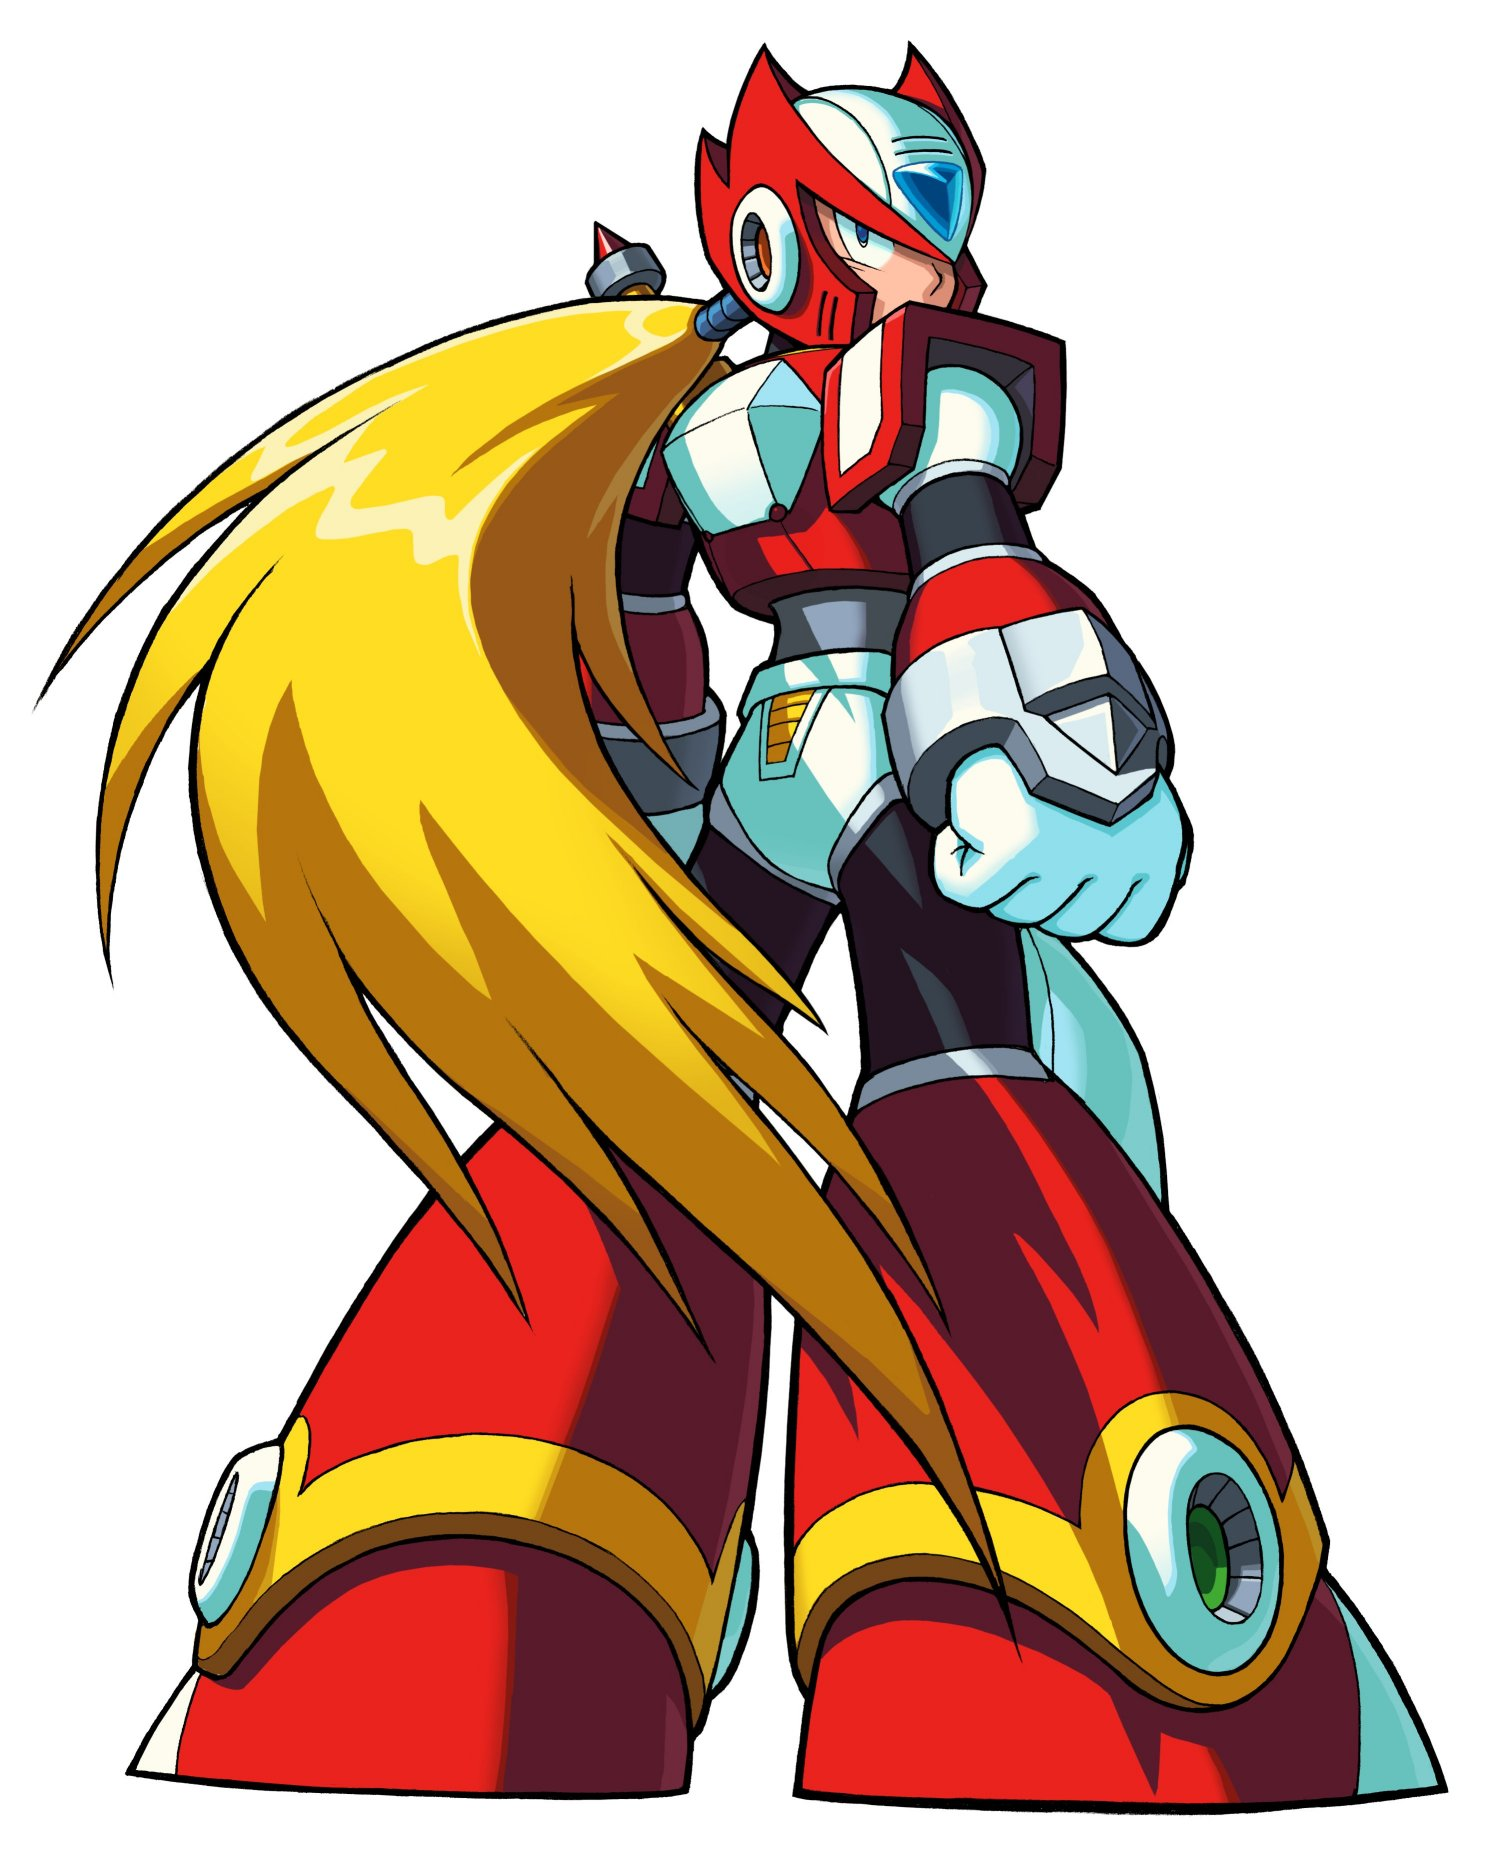 Mmkb The Mega Man Knowledge Base: Zero10 Kopie